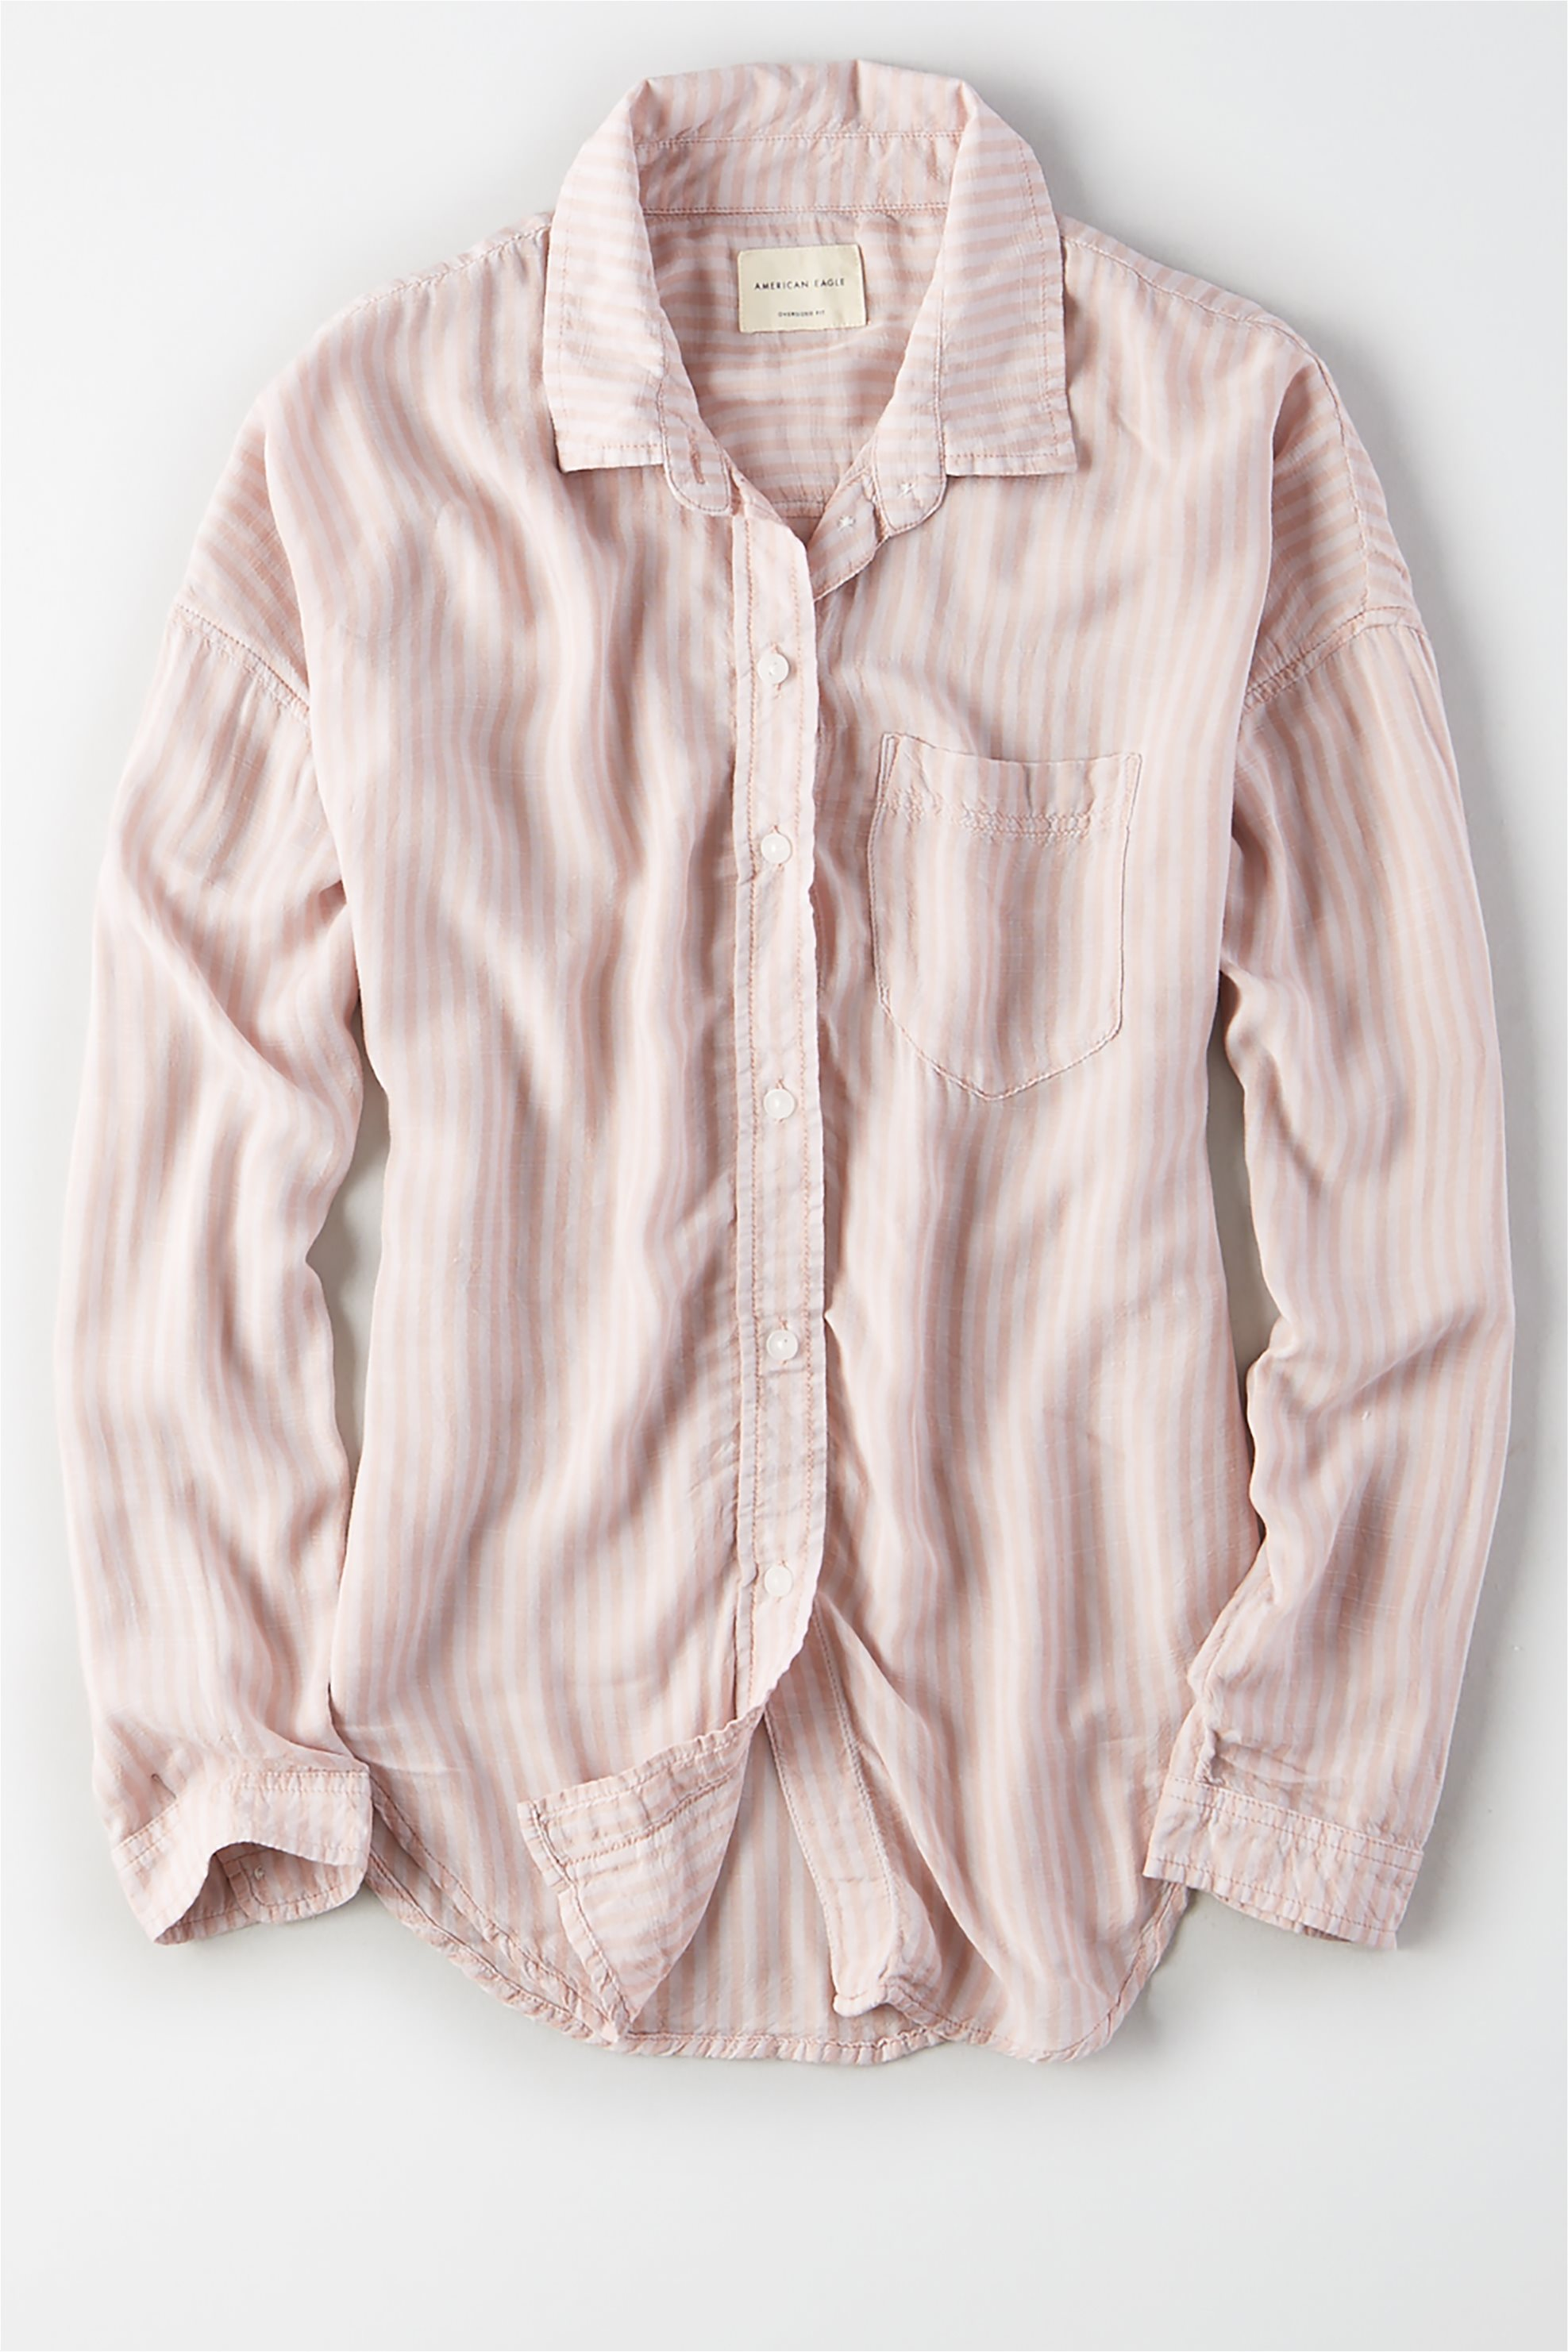 AE Oversized Striped Button Up Shirt - 1354-9205-107 - Nude